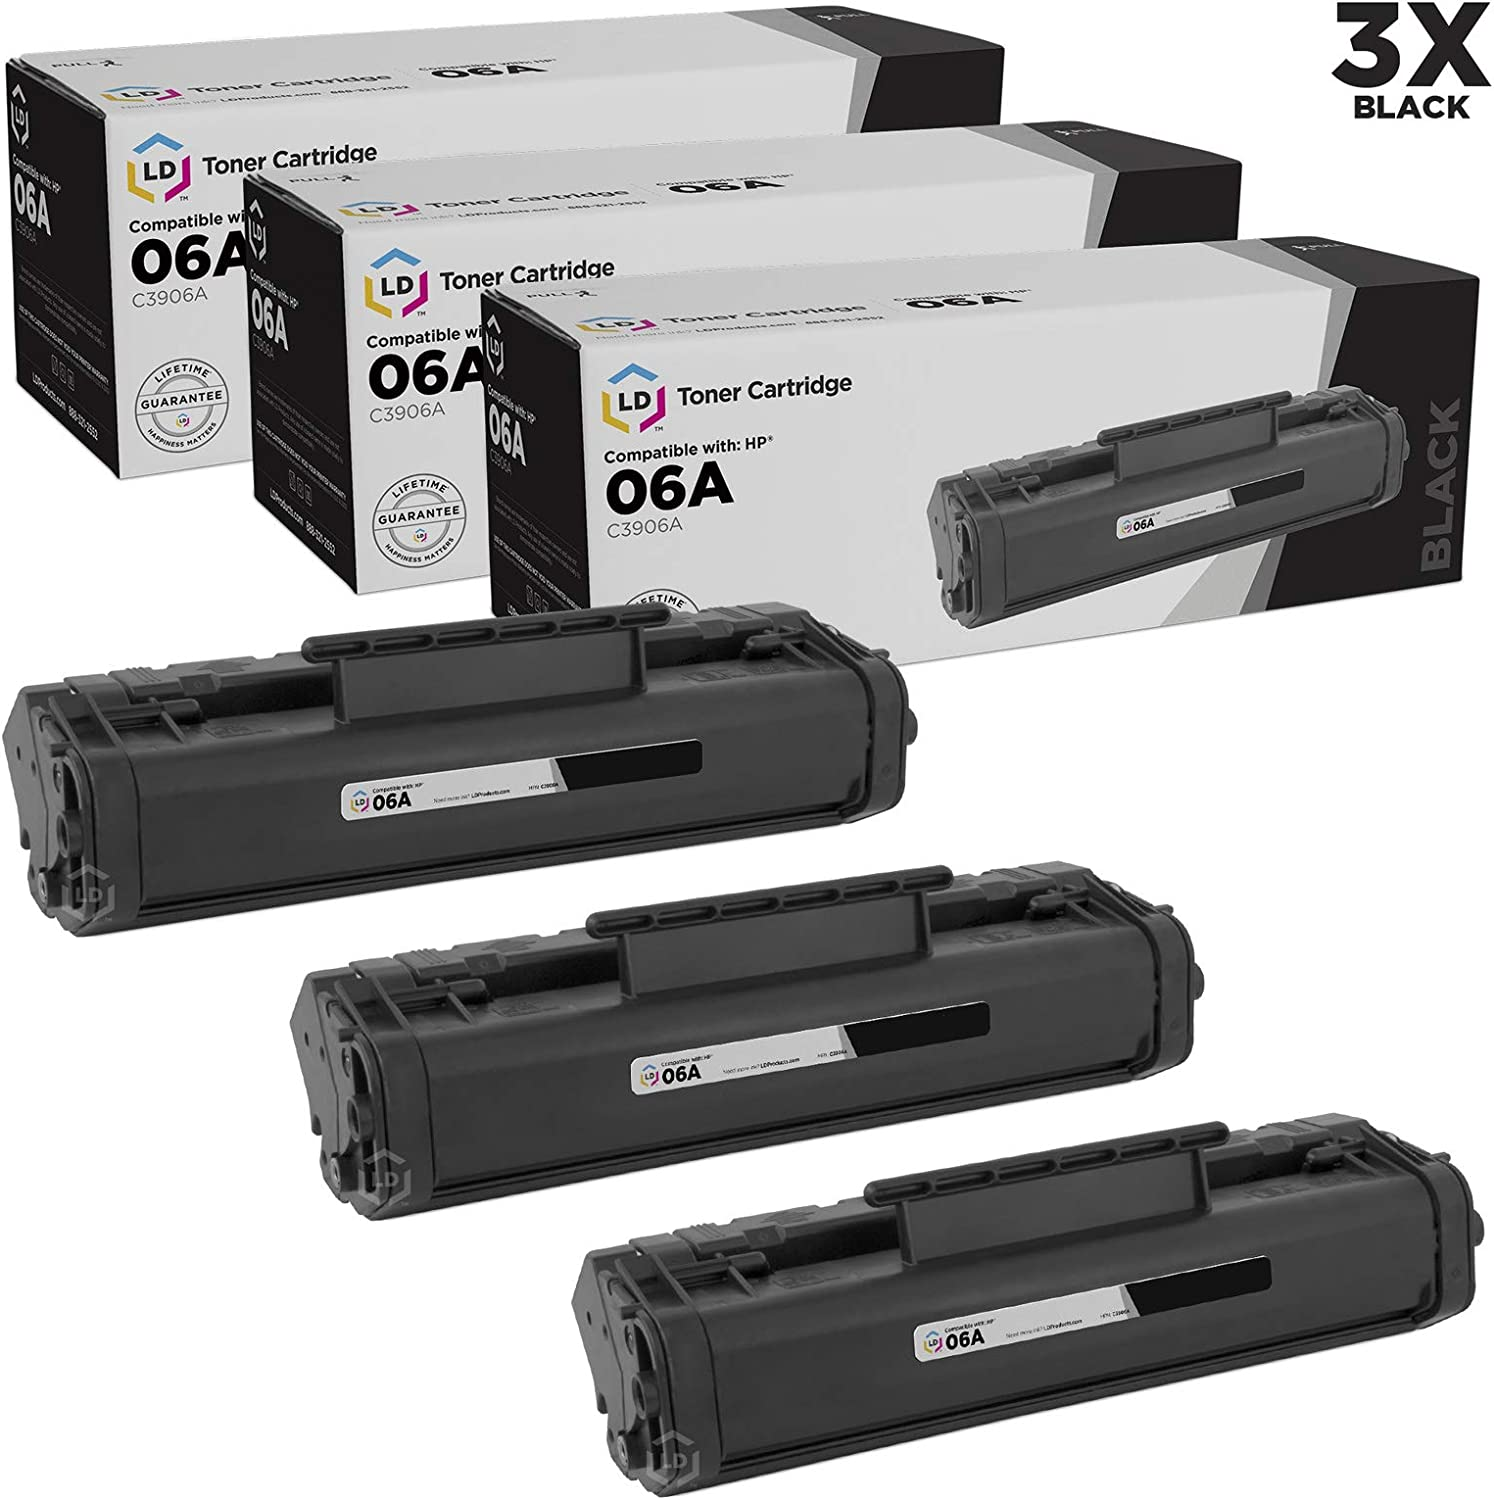 LD Remanufactured Toner Cartridge Replacement for HP 06A C3906A (Black, 3-Pack)